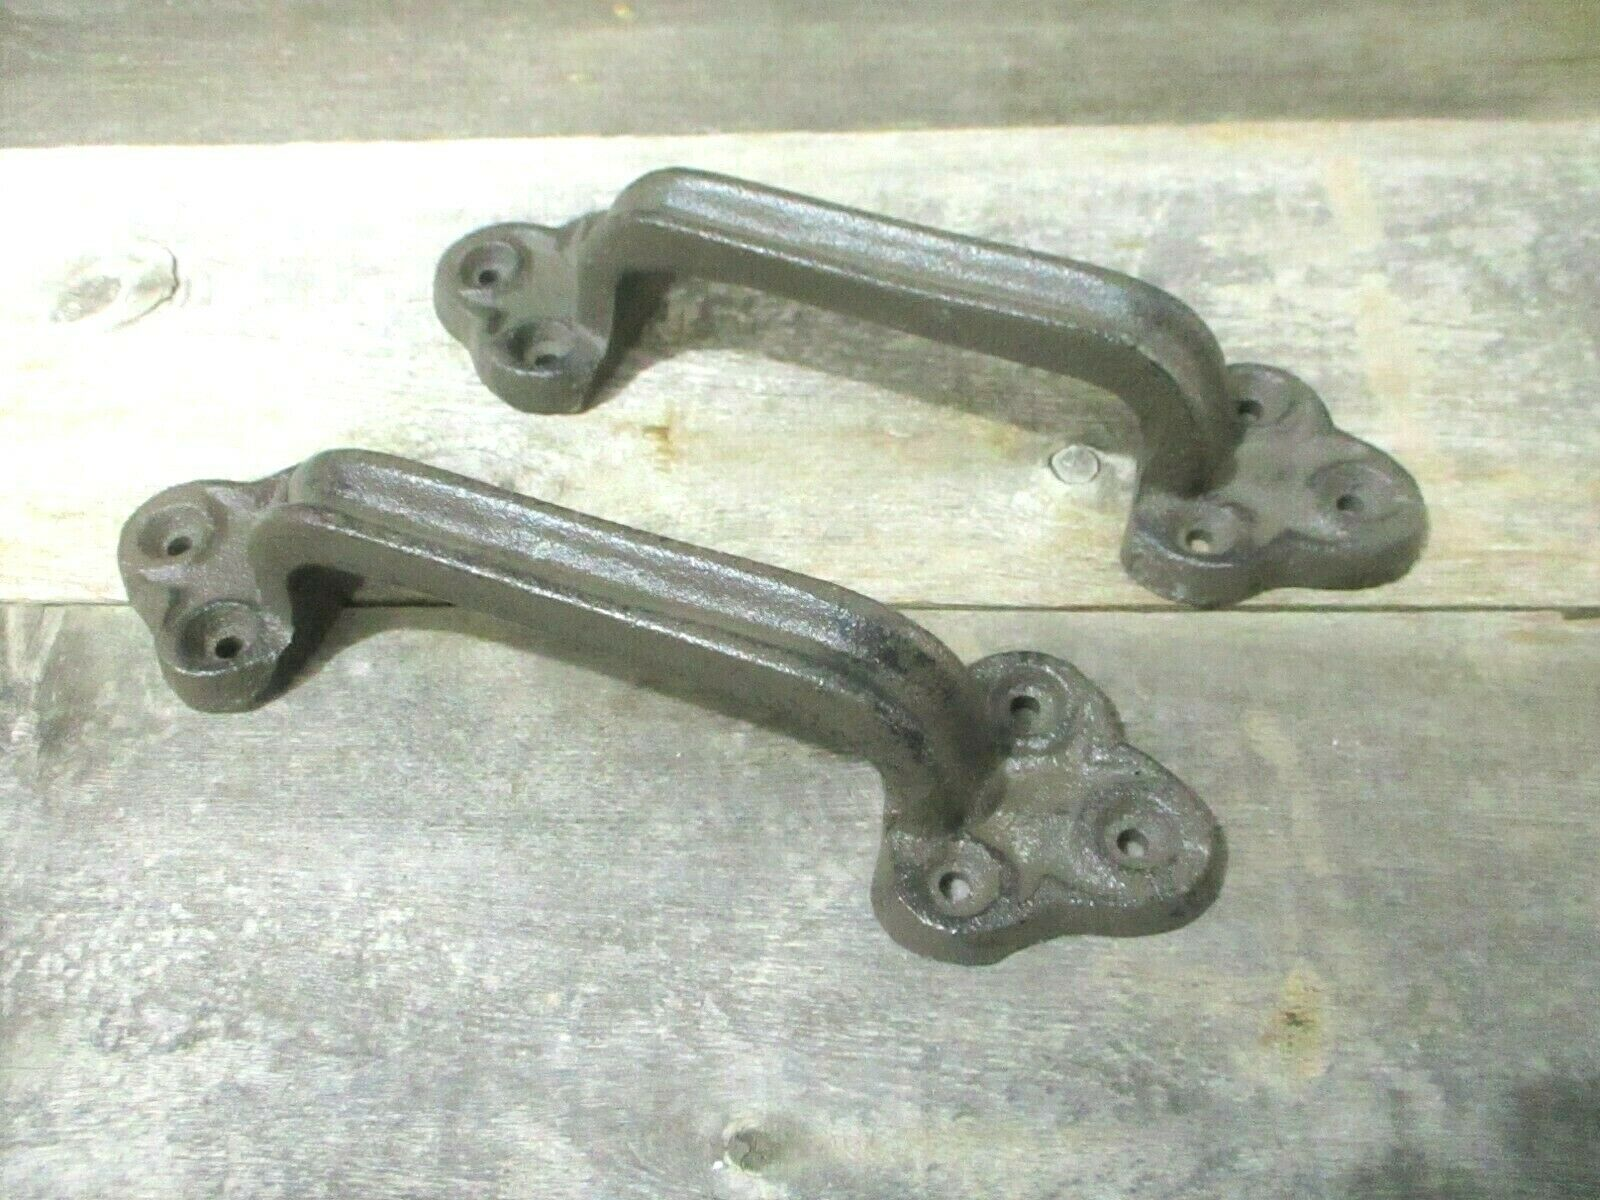 2 Large Rustic Cast Iron Barn Handle Gate Pull Shed Door Handles Brown Old Look